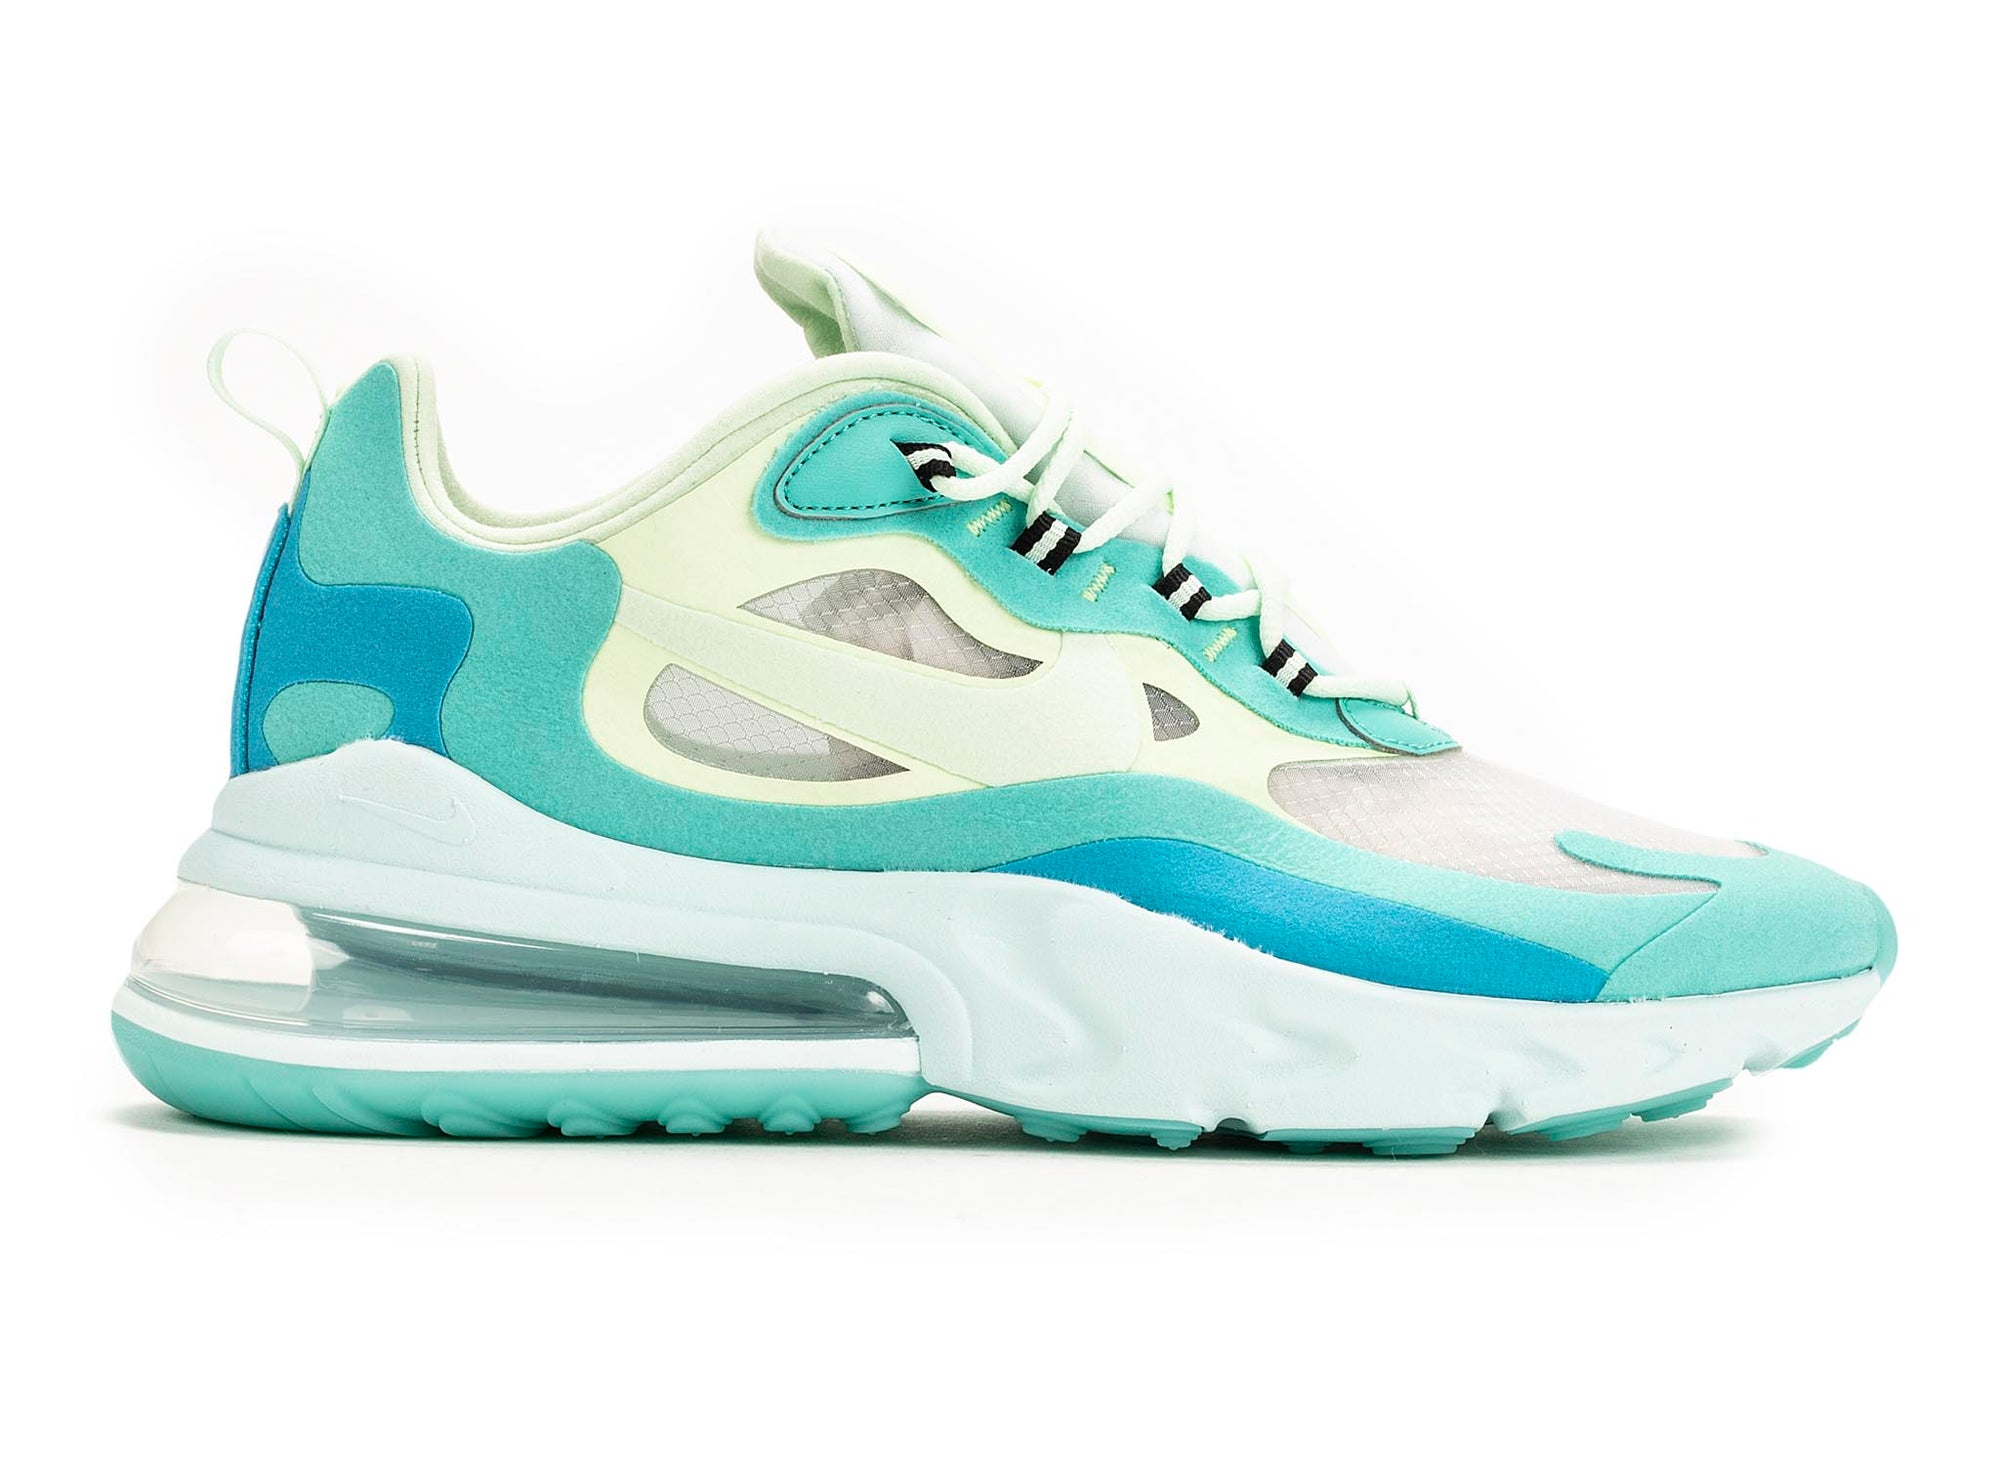 Nike Air Max 270 React 'Frosted Spruce'